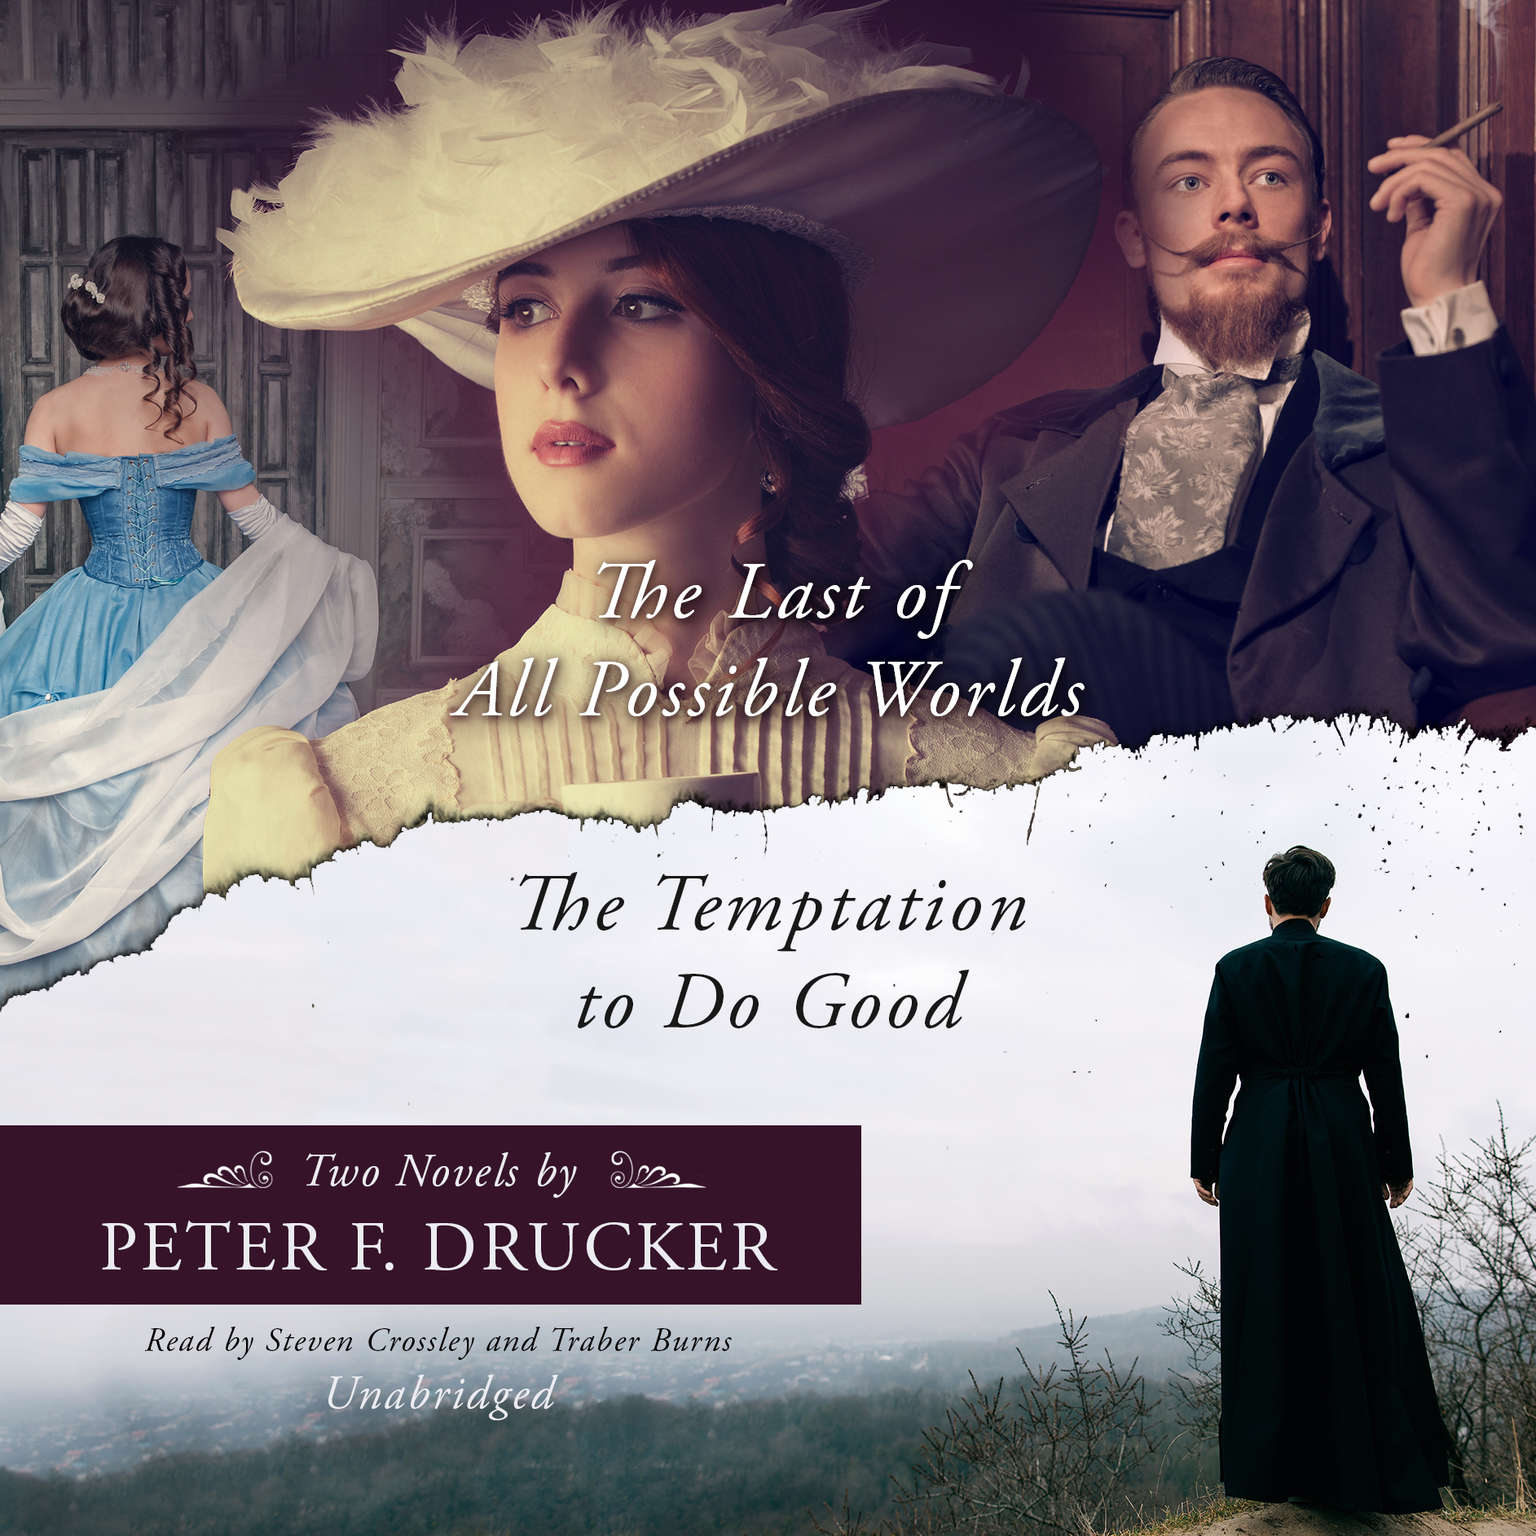 Printable The Last of All Possible Worlds and The Temptation to Do Good: Two Novels by Peter F. Drucker Audiobook Cover Art